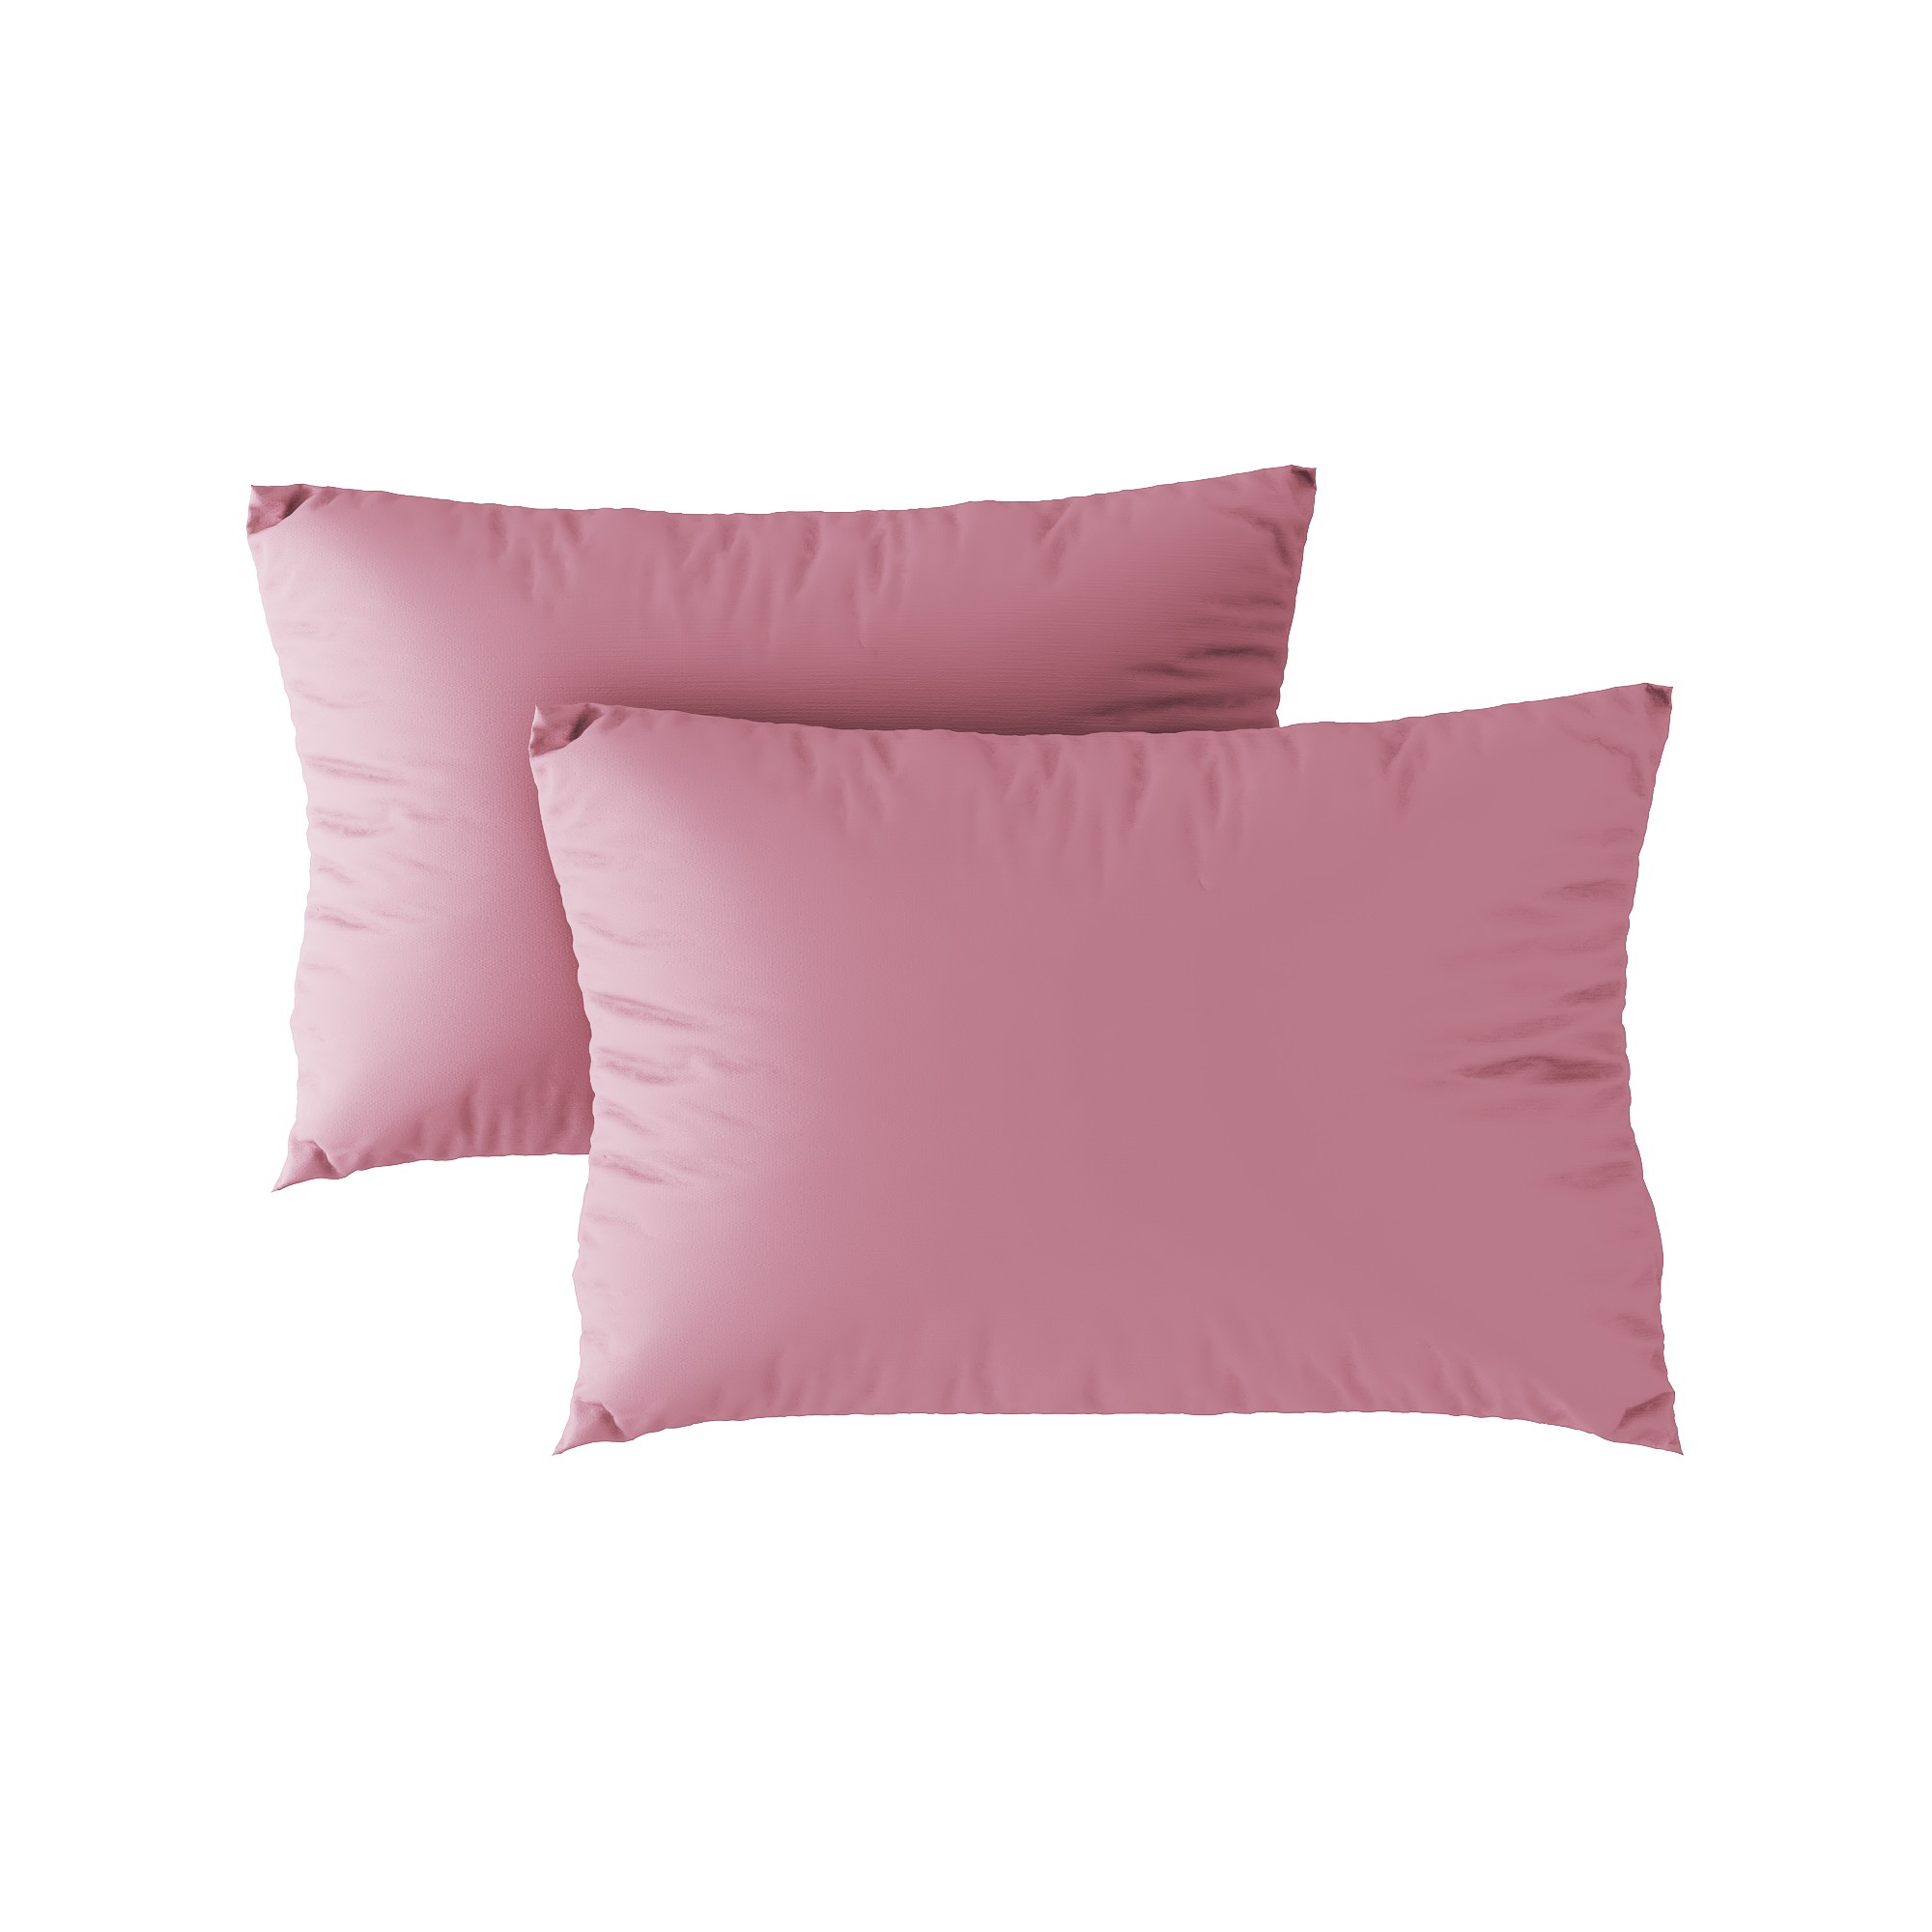 Standard pillow case 09 Salmon pink (2pcs)